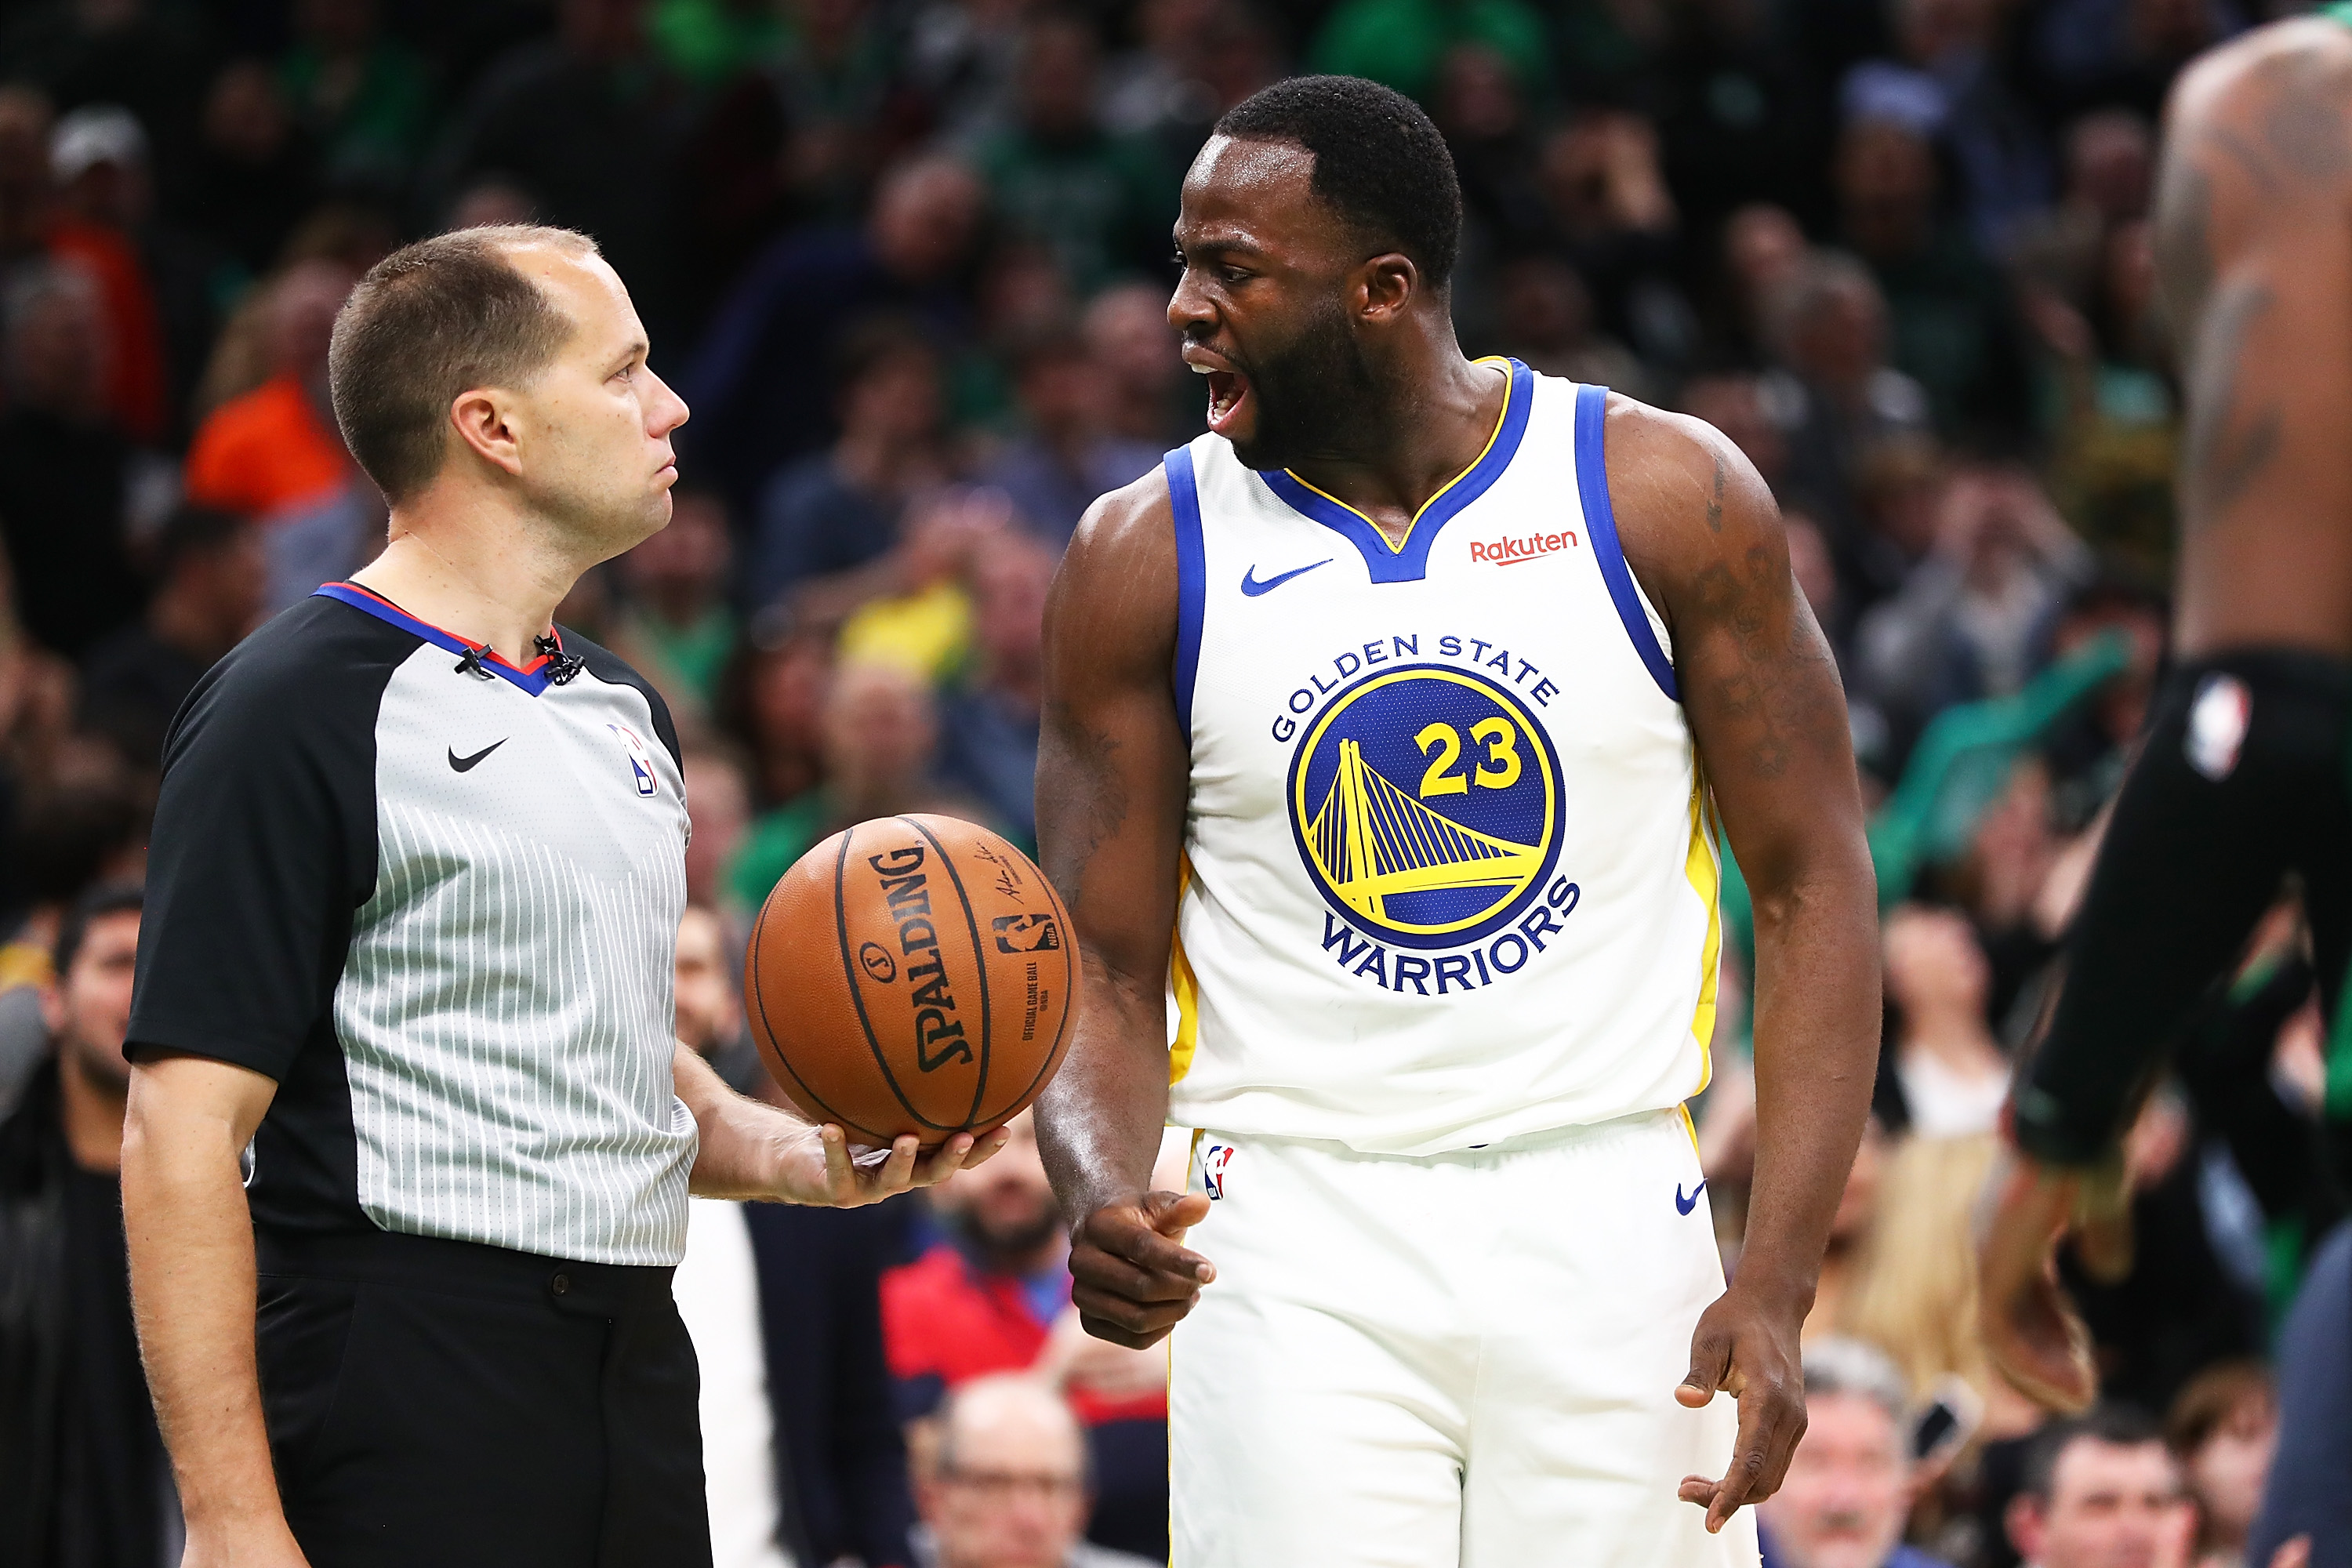 Draymond Green of the Golden State Warriors yells at the referee